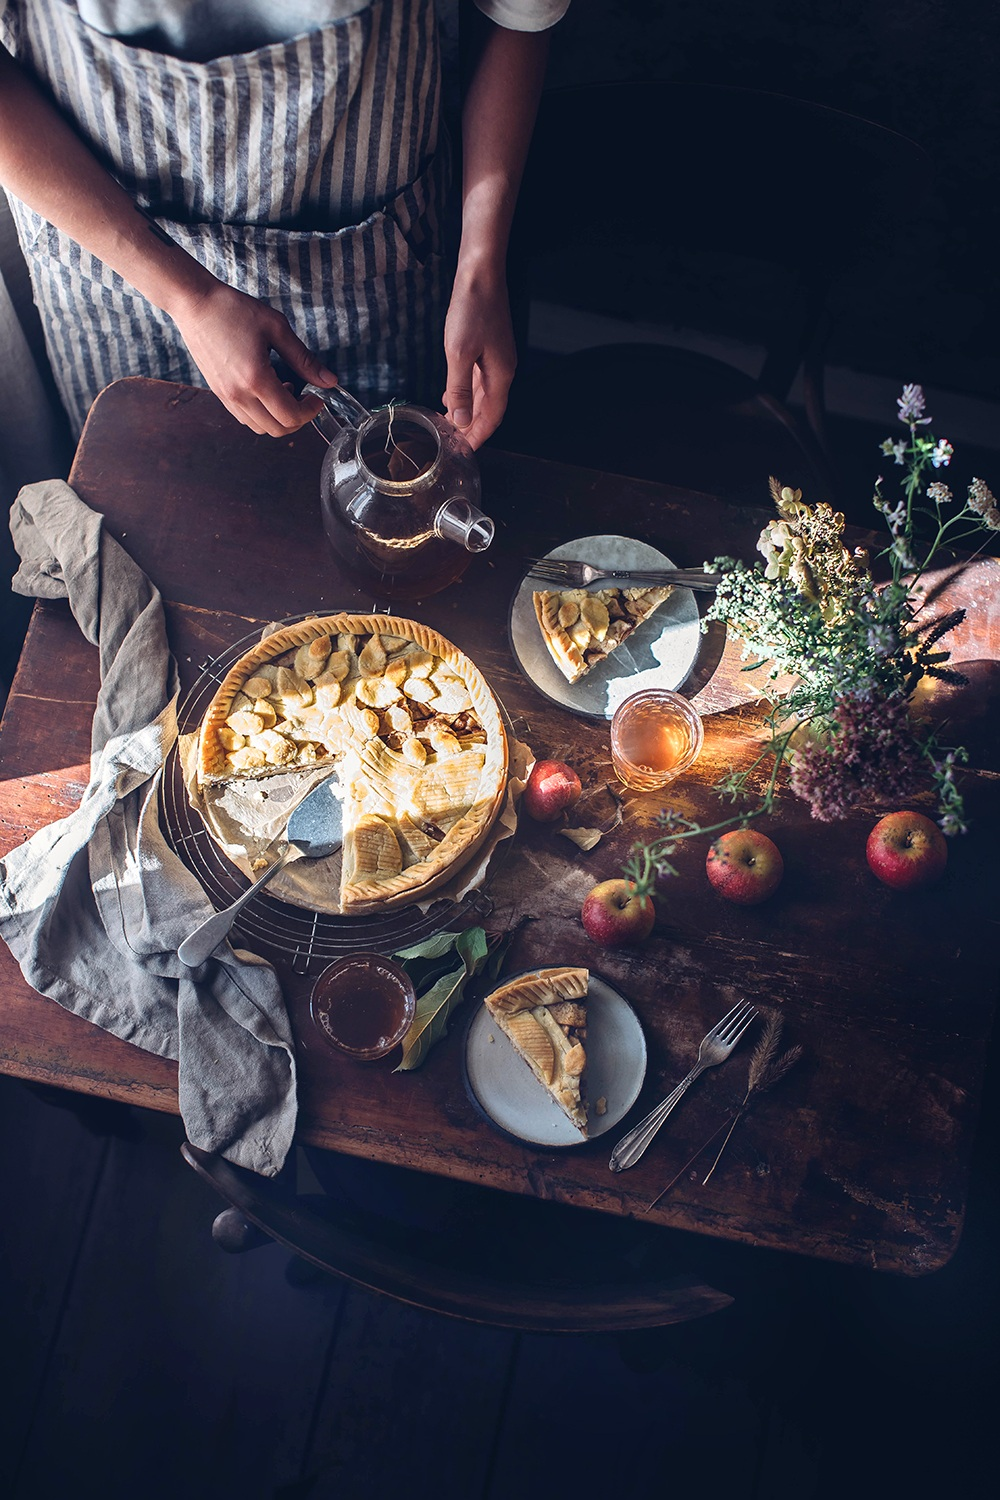 Gluten-free Apple Pie with Cardamom and Ginger